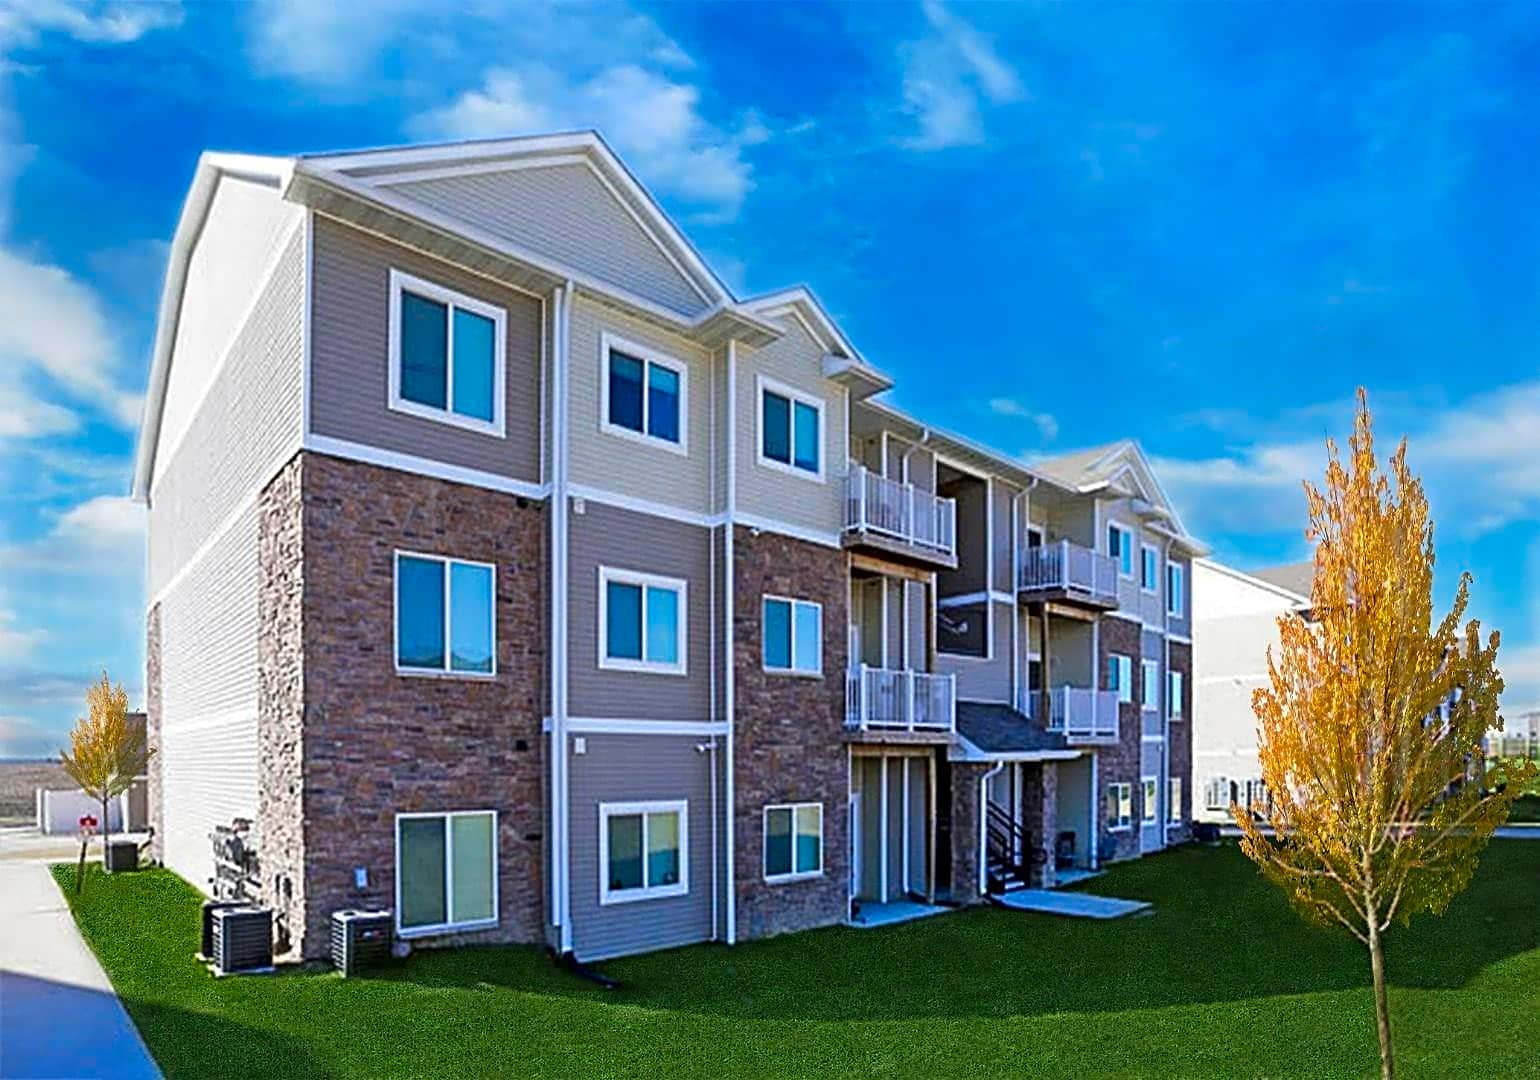 Apartments Near Kaplan University-Des Moines Campus Johnston Heights for Kaplan University-Des Moines Campus Students in Urbandale, IA